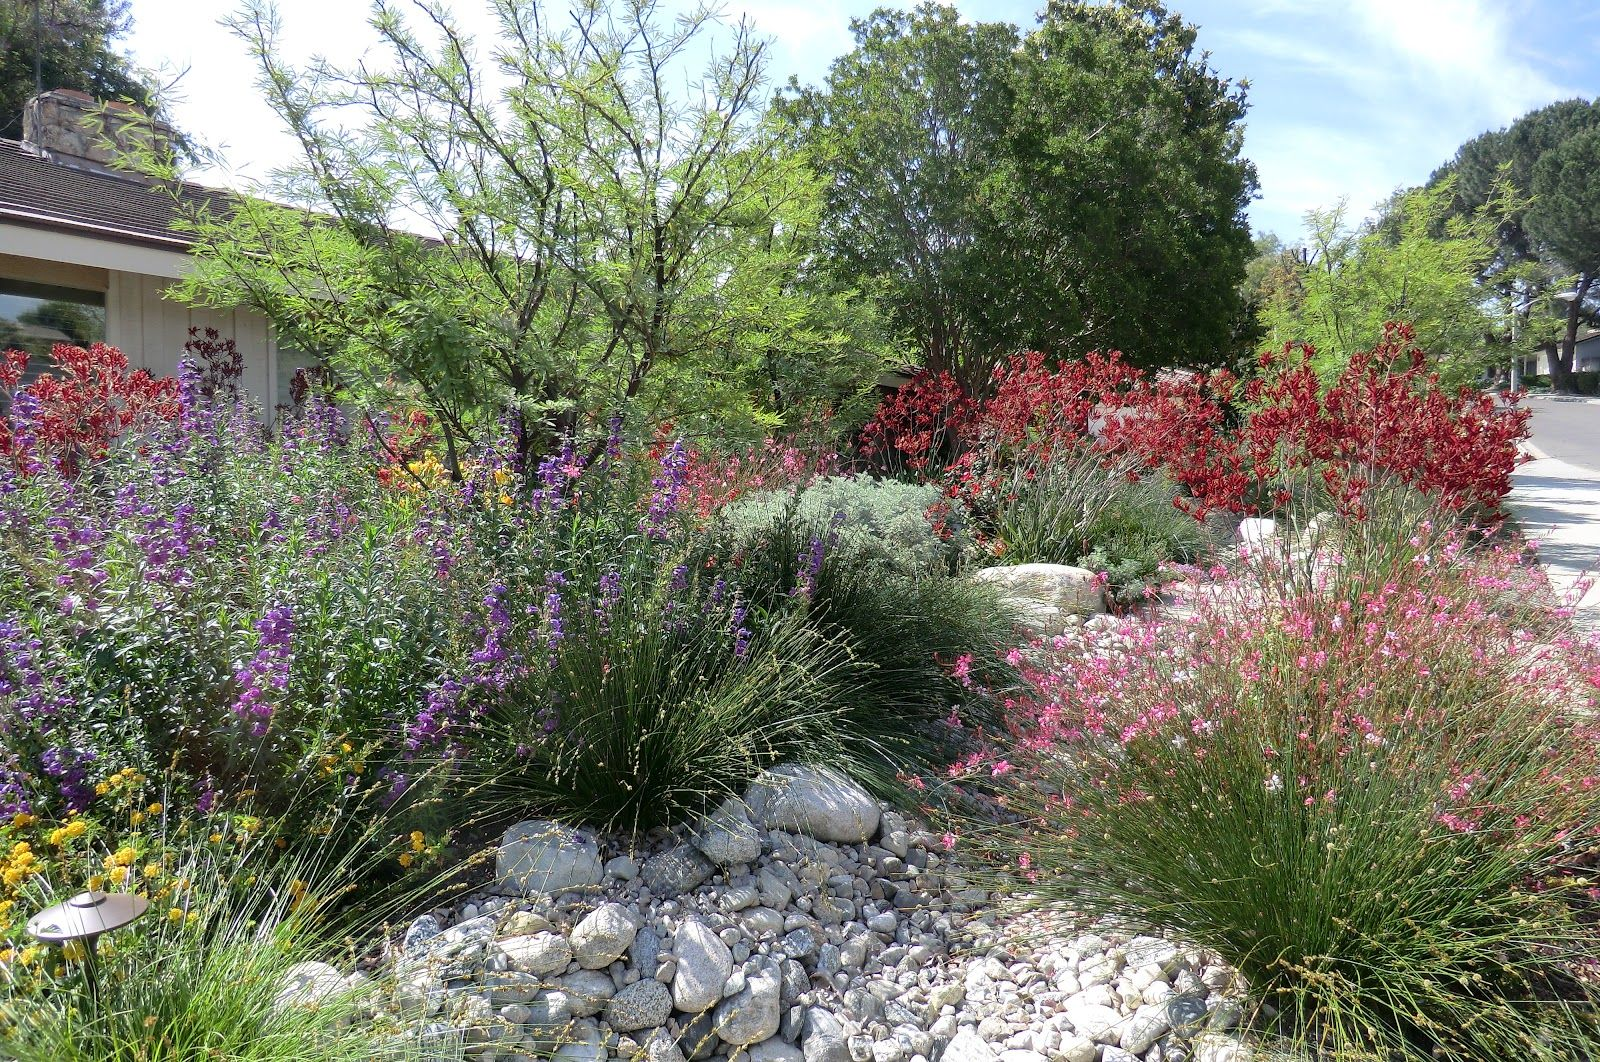 california native plant gardening and landscaping have